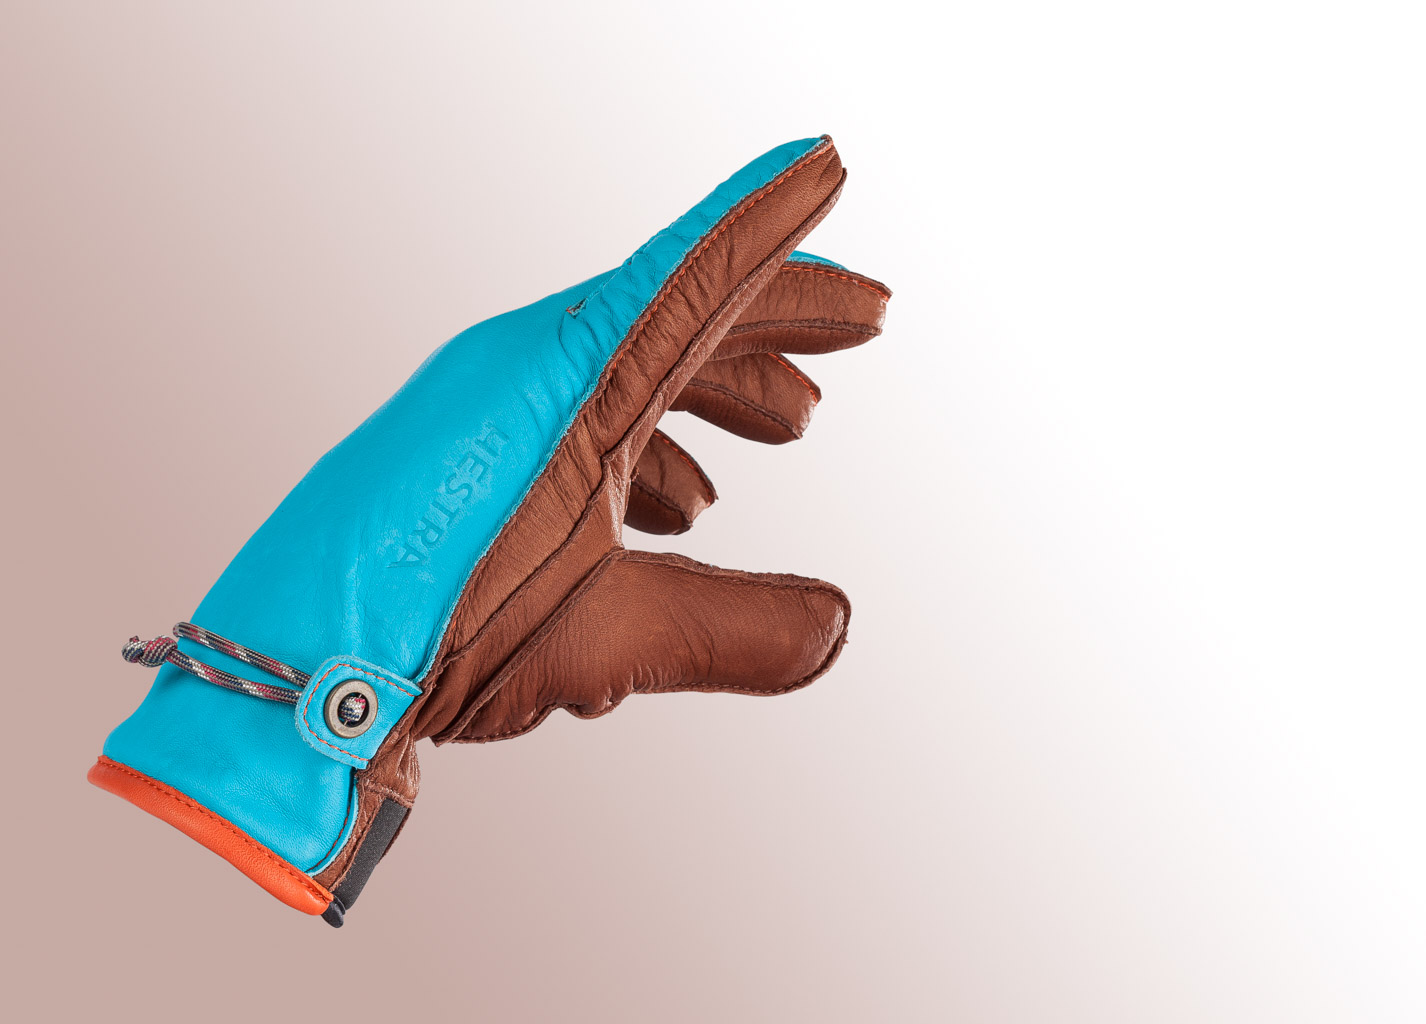 Hestra glove on solid white background for editorial use